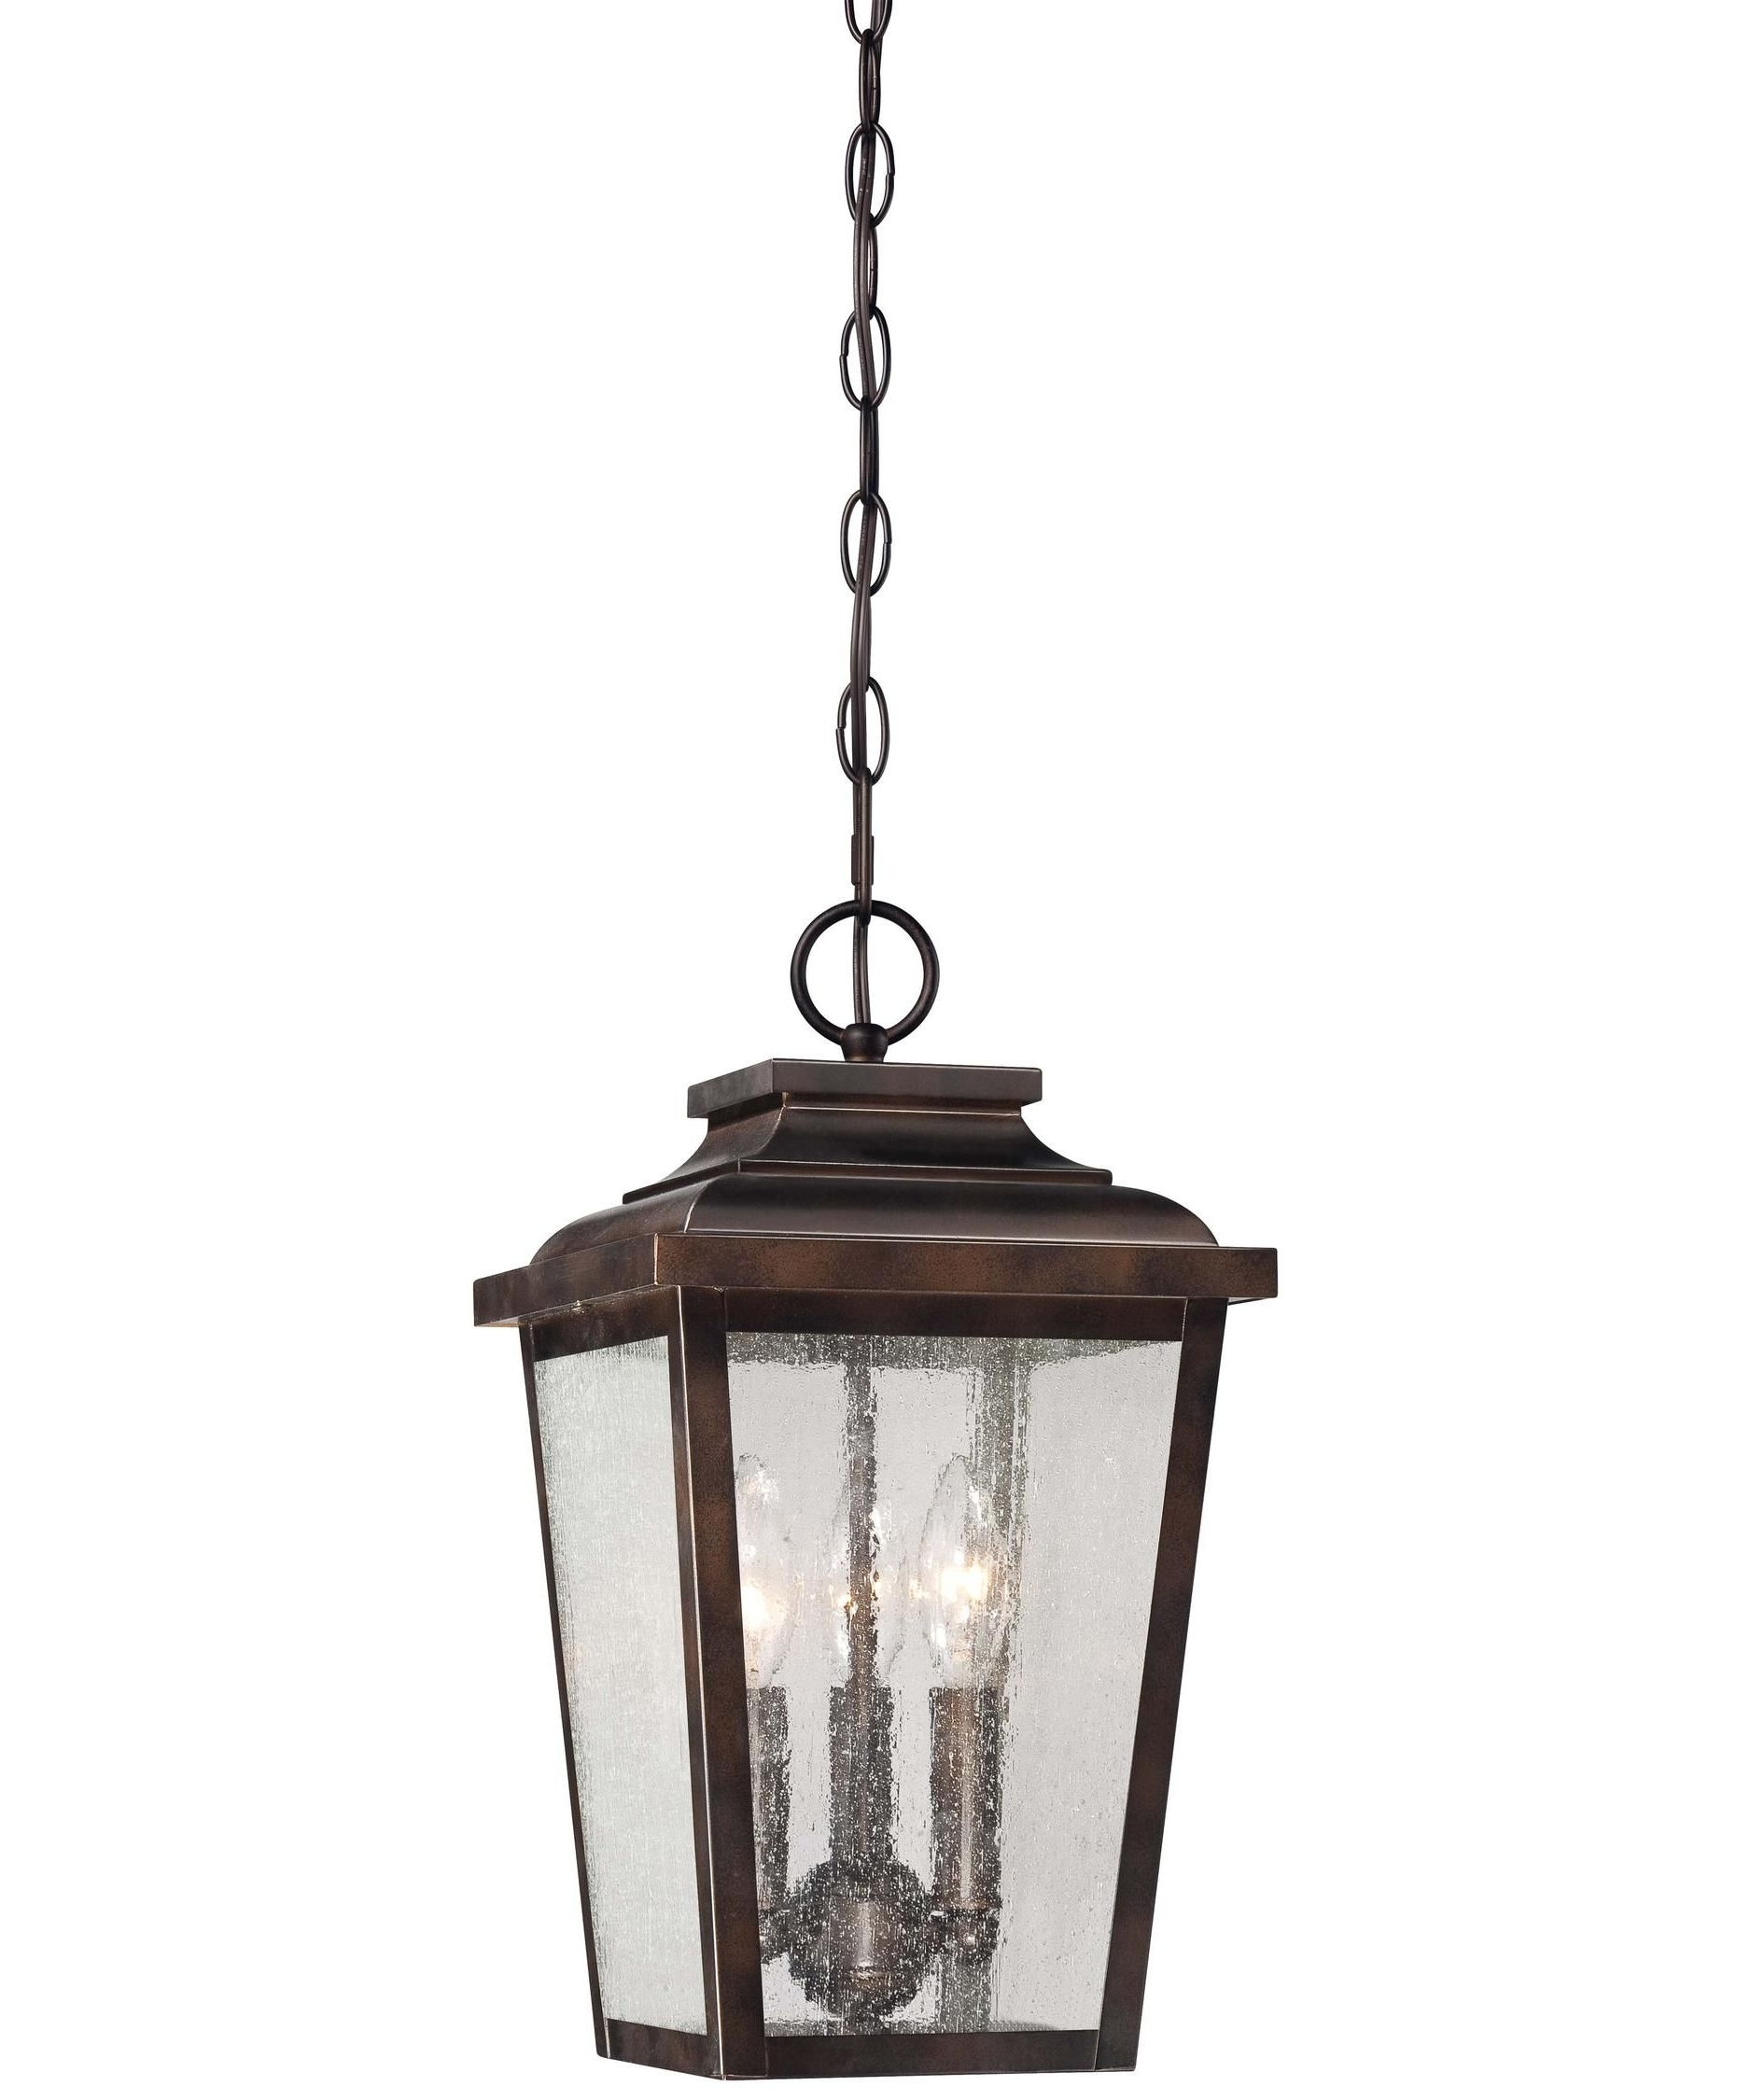 Minka Lavery 72174 Irvington Manor 3 Light Outdoor Hanging Lantern Intended For Most Popular Outdoor Hanging Lights For Porch (View 9 of 20)